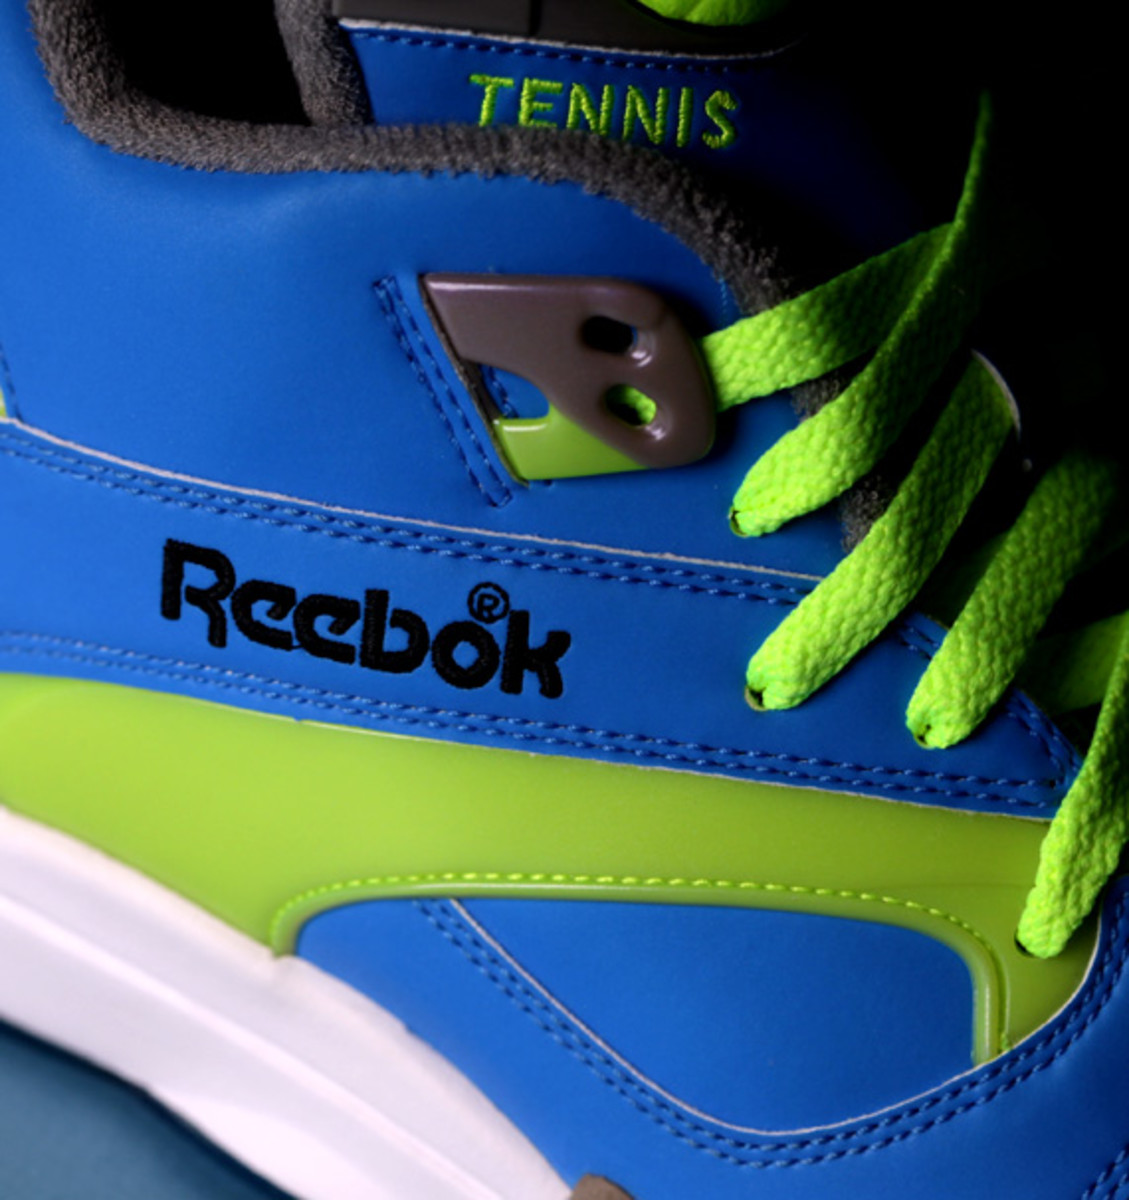 packer-shoes-reebok-court-victory-pump-us-open-12